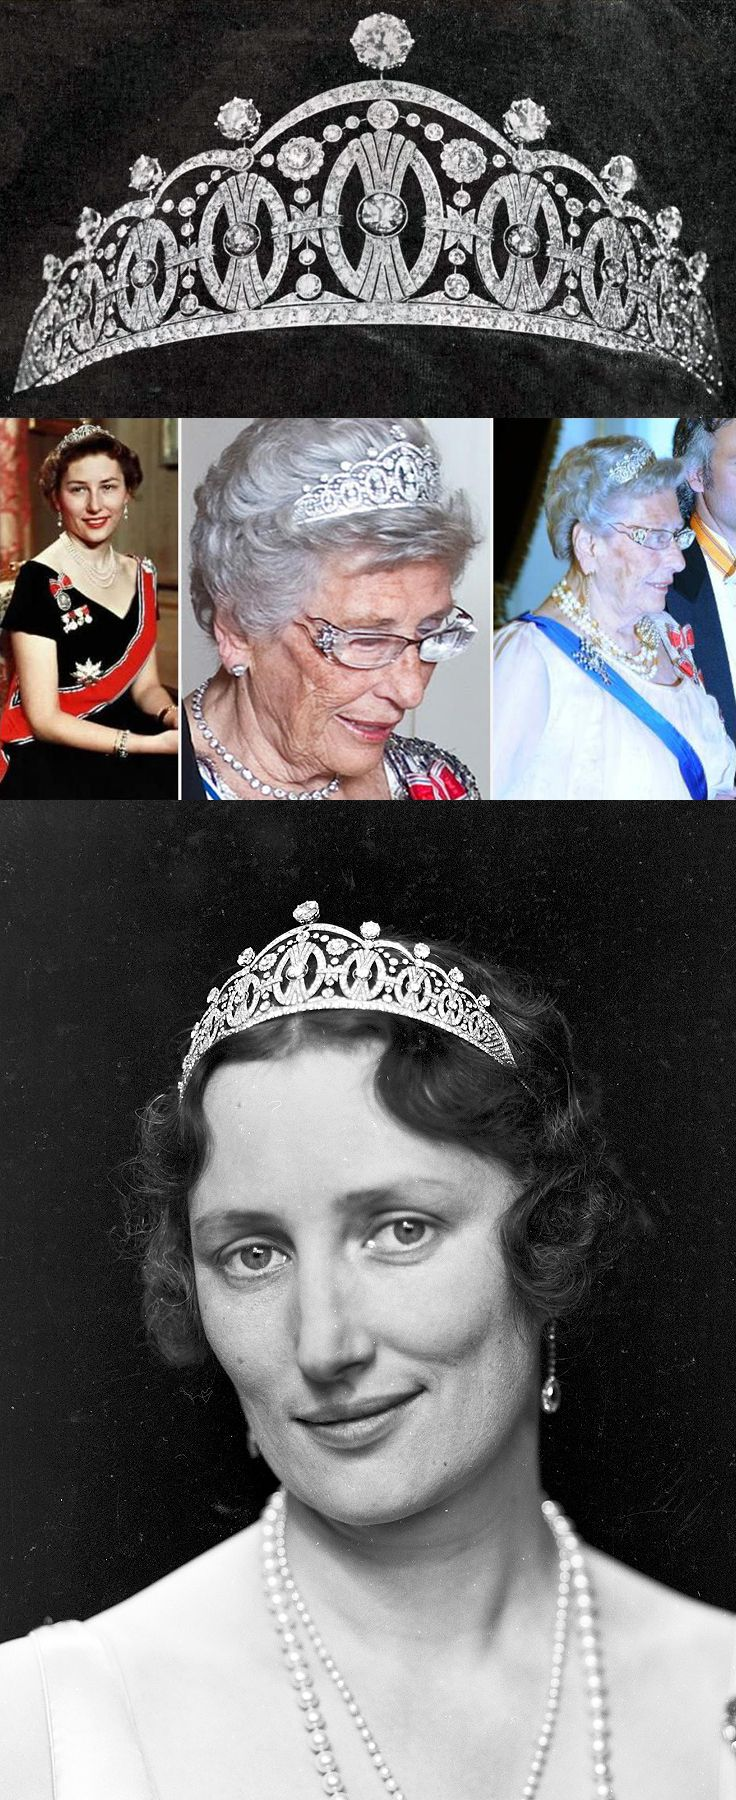 The Vasa Diamond Tiara, Princess Märtha of Sweden (below) was offered by the City of Stockholm on the occasion of her marriage to Olav, Crown Prince of Norway in 1929. Now owned by Princess Astrid of Norway (center). designed by Mr. Sven Carlman and made by O. F. Carlman, in the Art Deco style, set with 986 diamonds weighing 49.5 karats, in platinum. The Diadem pattern represents the crest, was inspired by the sheaf of wheat of the Vasa family that ruled Sweden from 1523 to 1654.